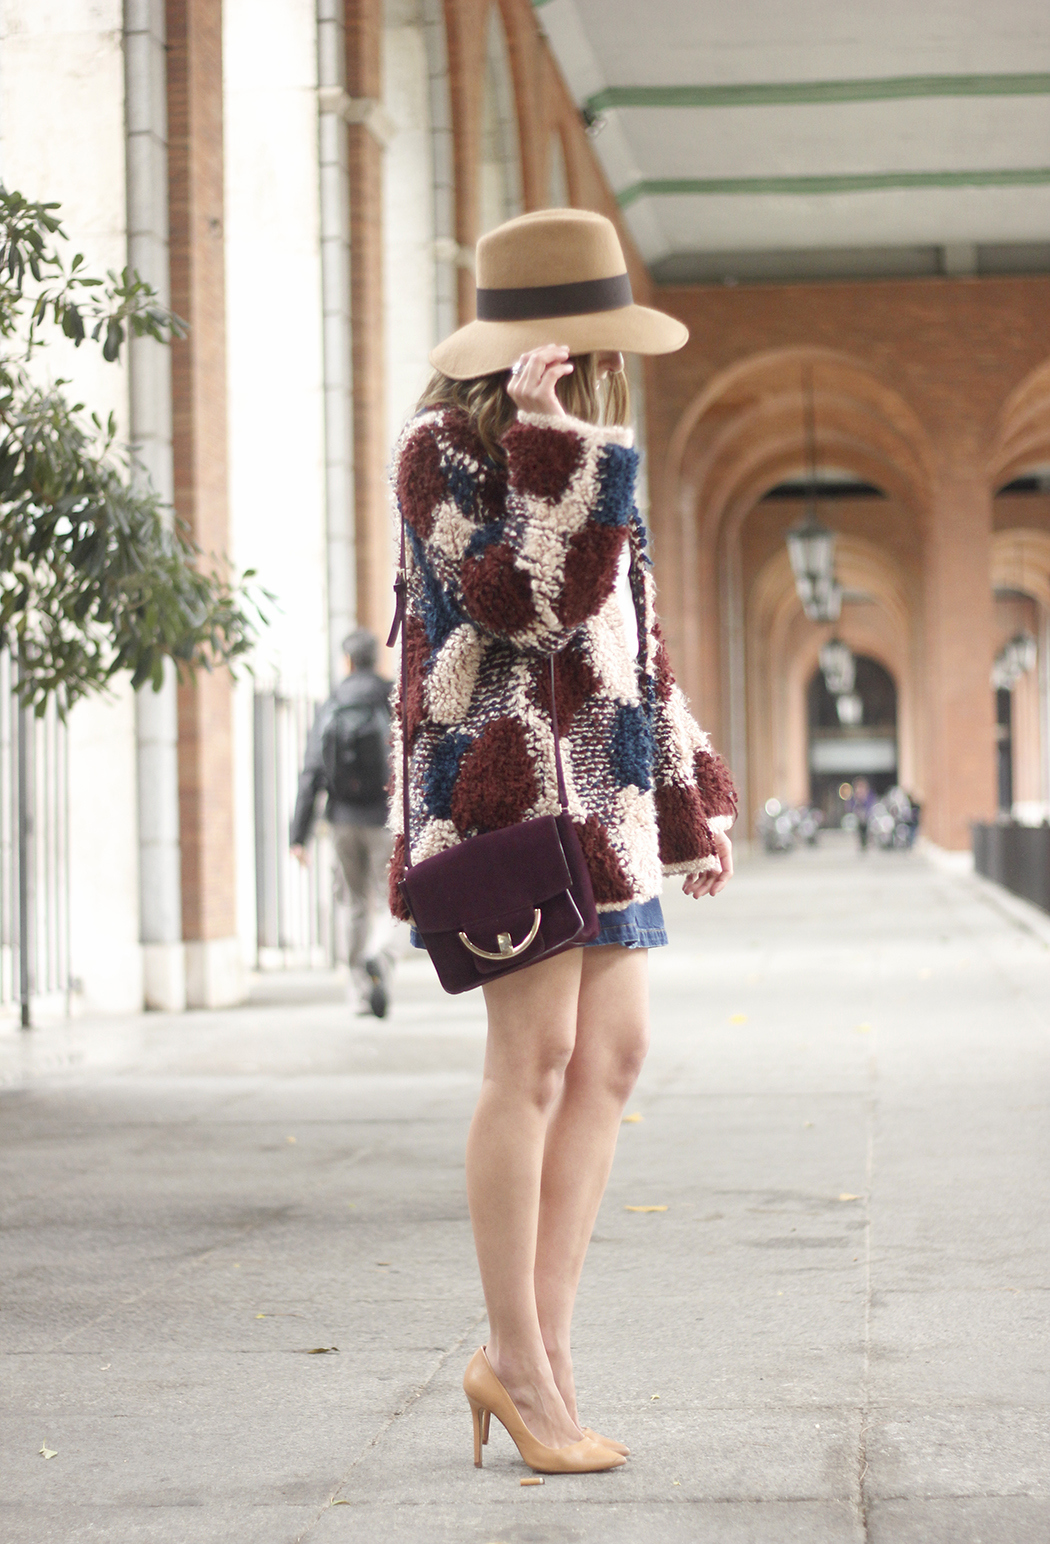 Cardigan Denim Skirt Camel Hat Burgundy Bag outfit04